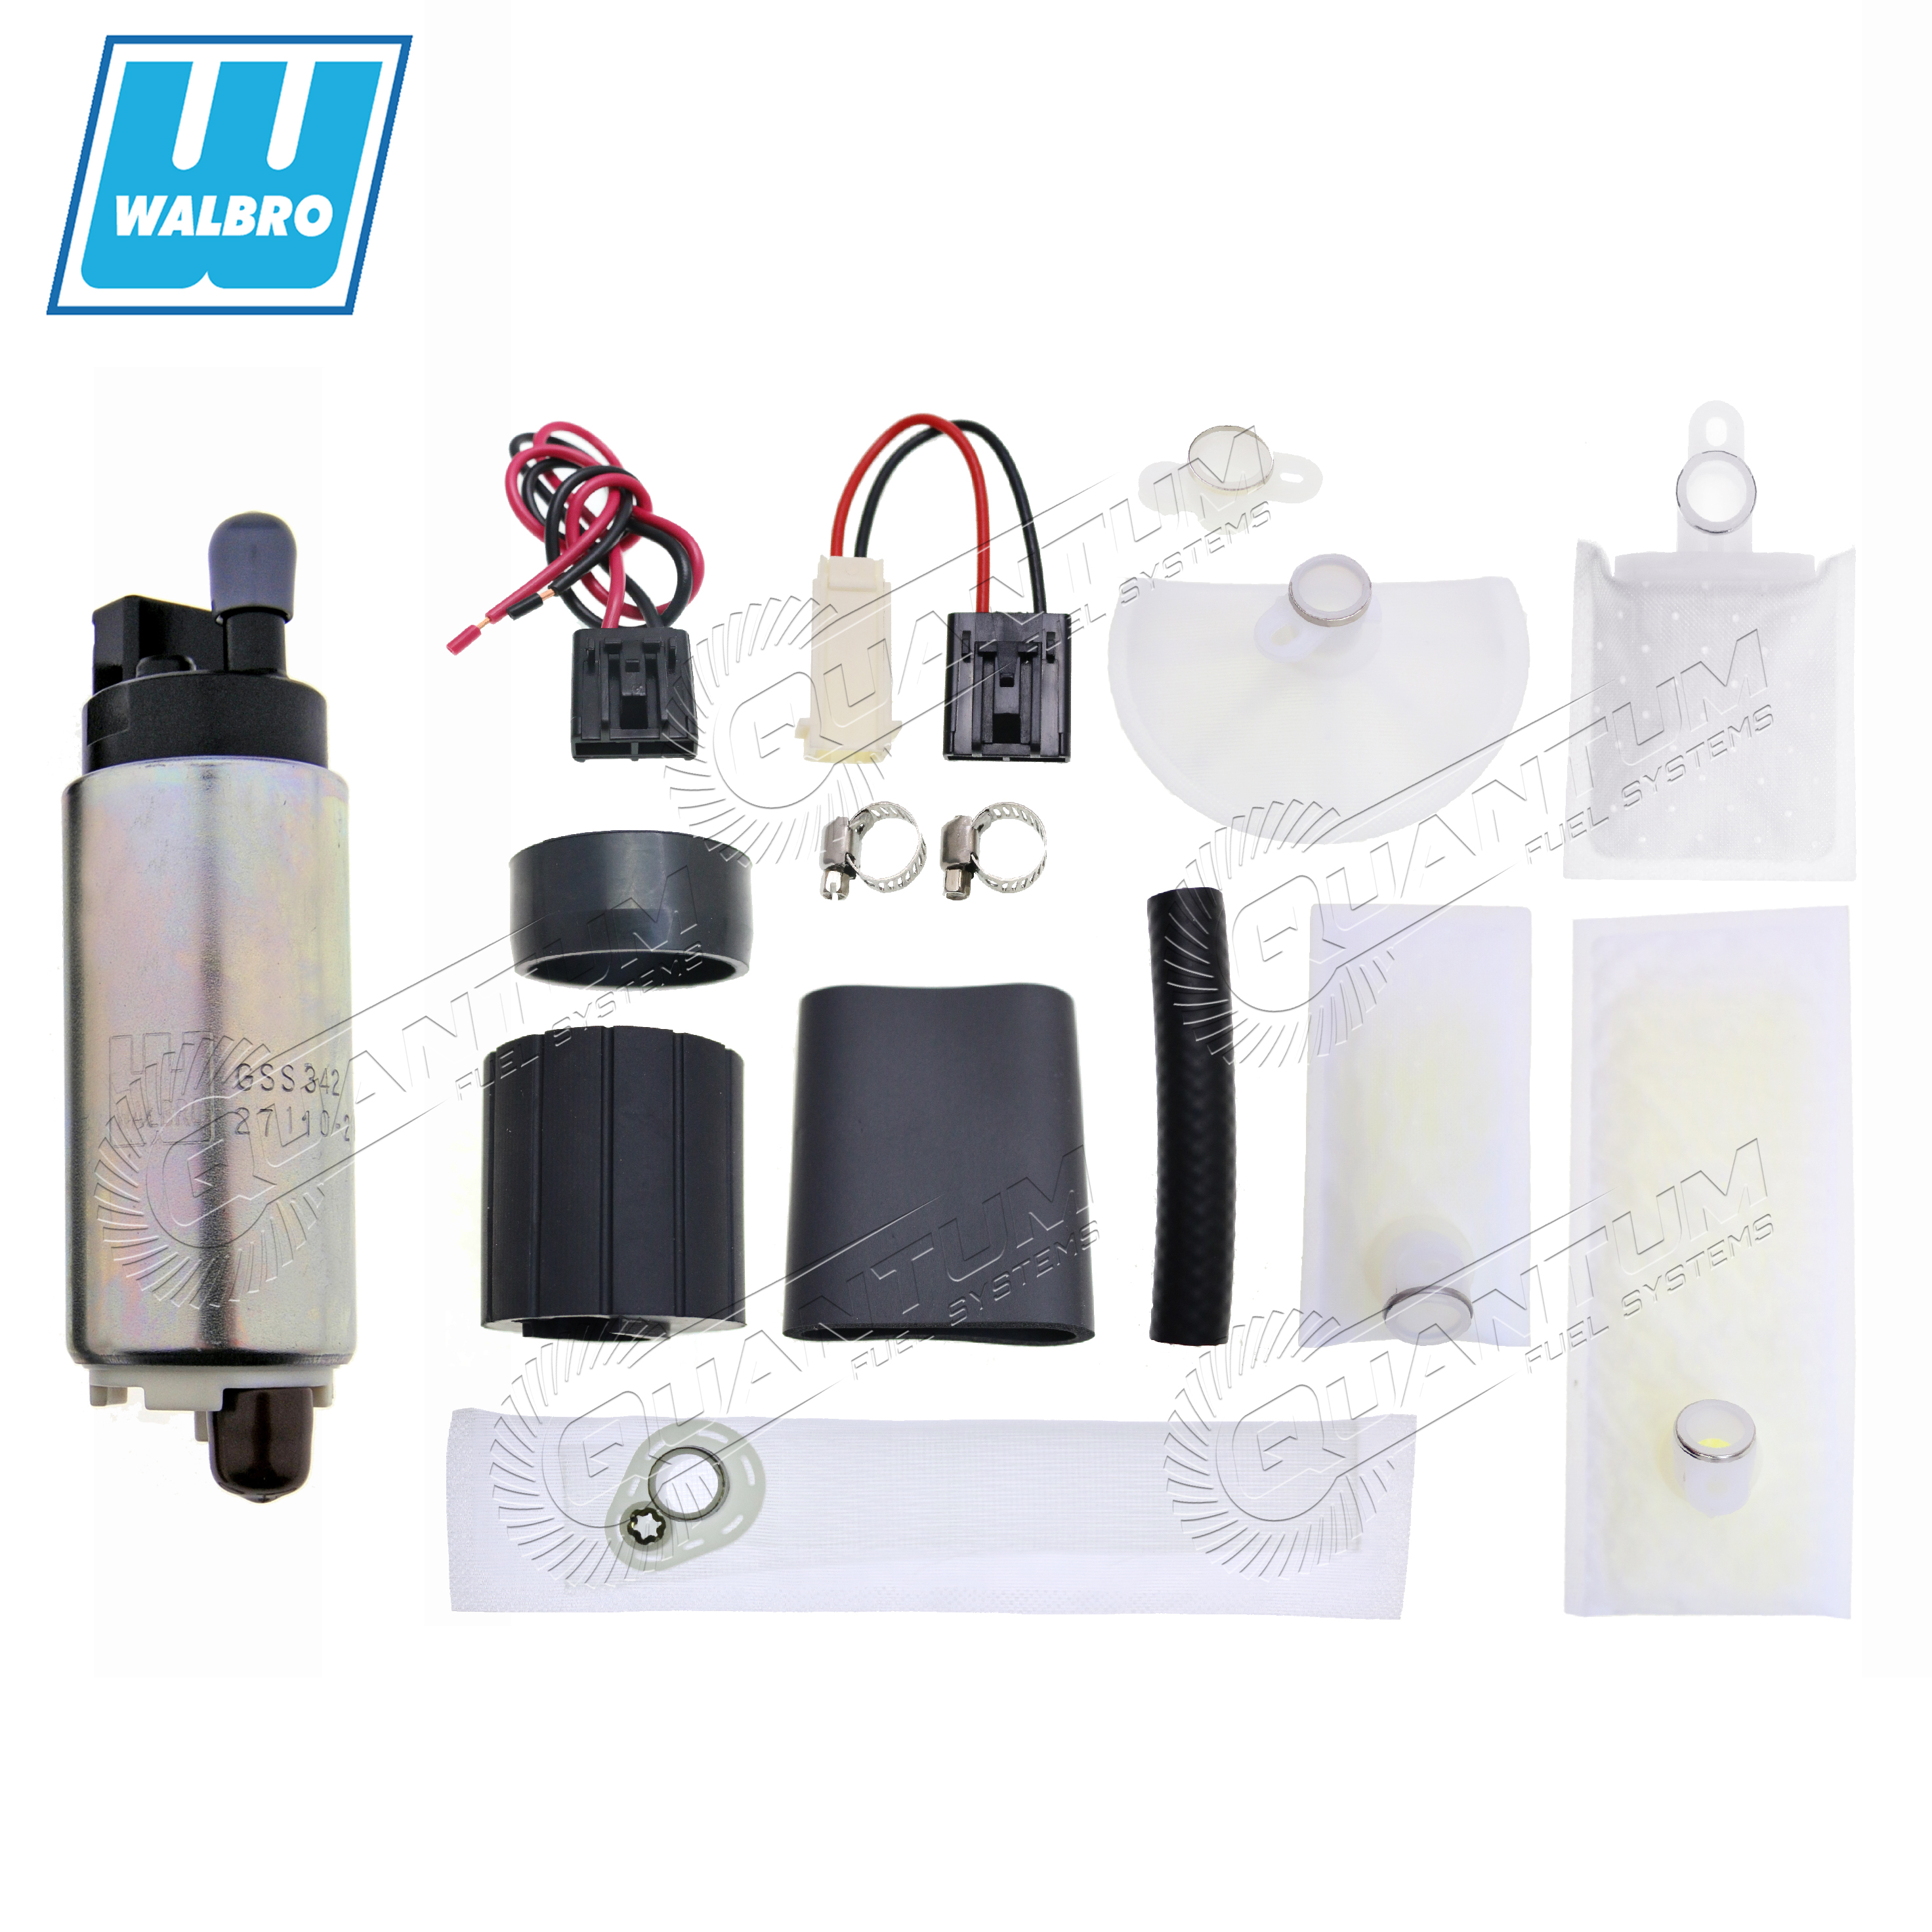 Walbro Fuel Pump For All Nissan 350Z 370Z 255 LPH NISMO New